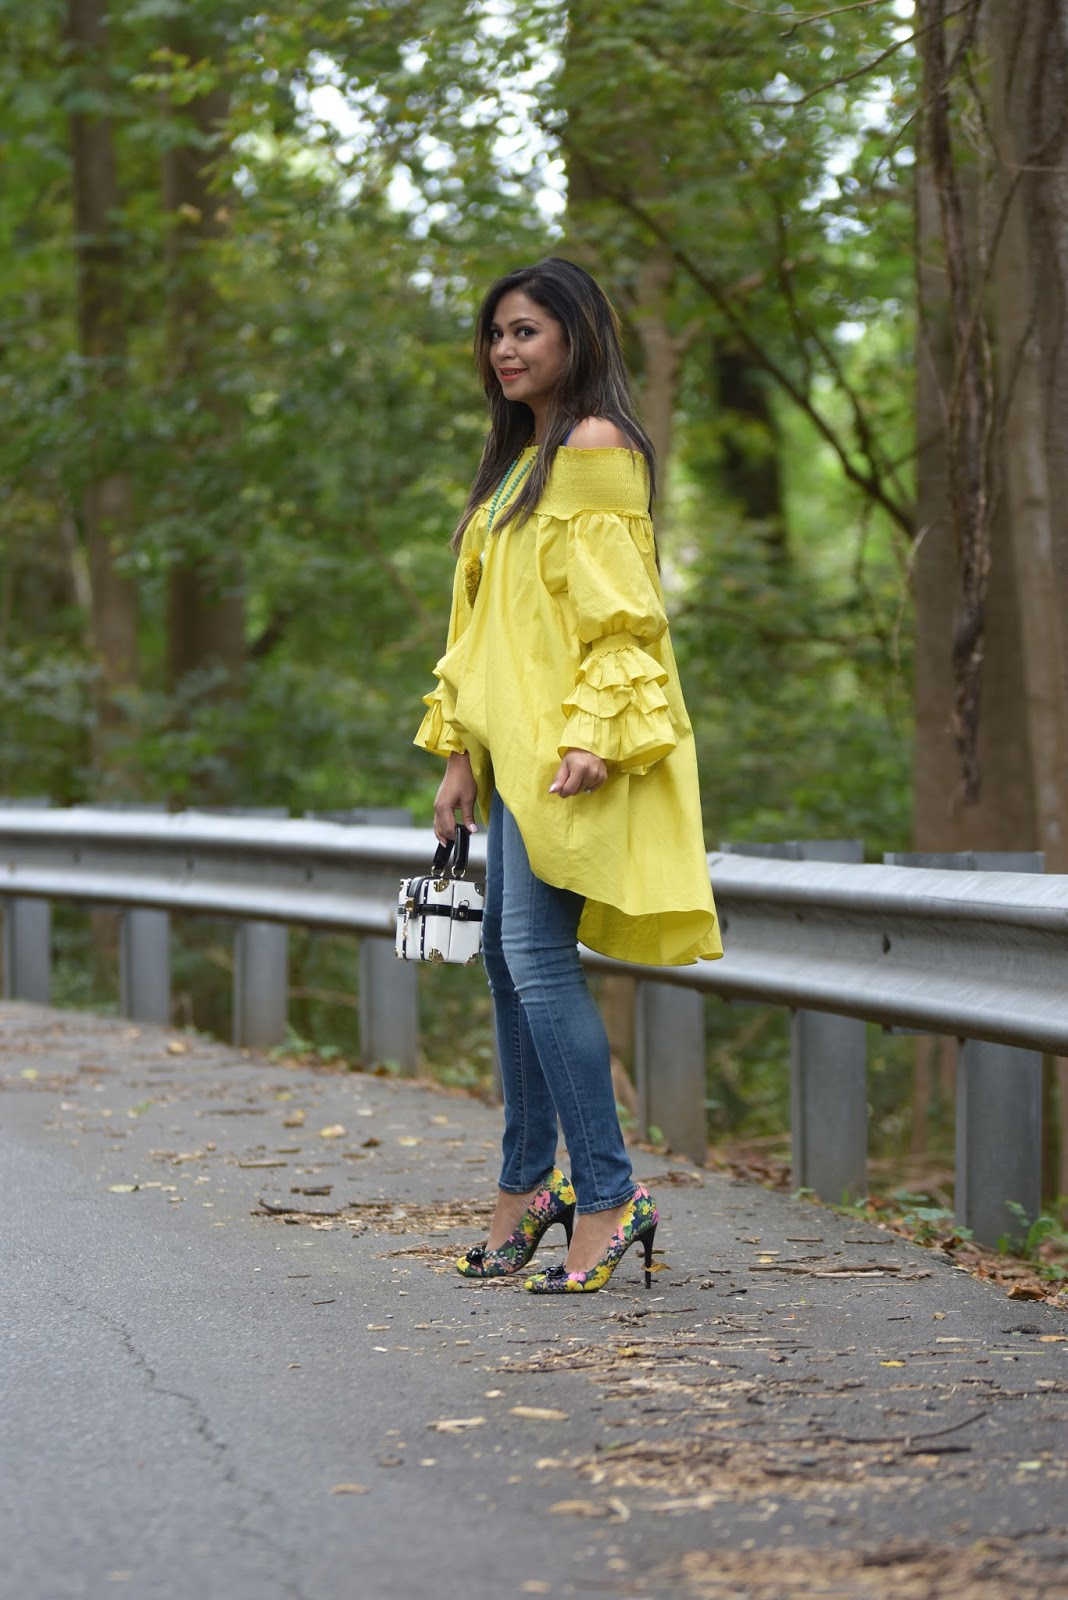 how to wear dress over jeans, fall fashion, baloon sleeves, skinny jeans, colorful pumps, blogger, style, street style, chartreuse dress .jpg